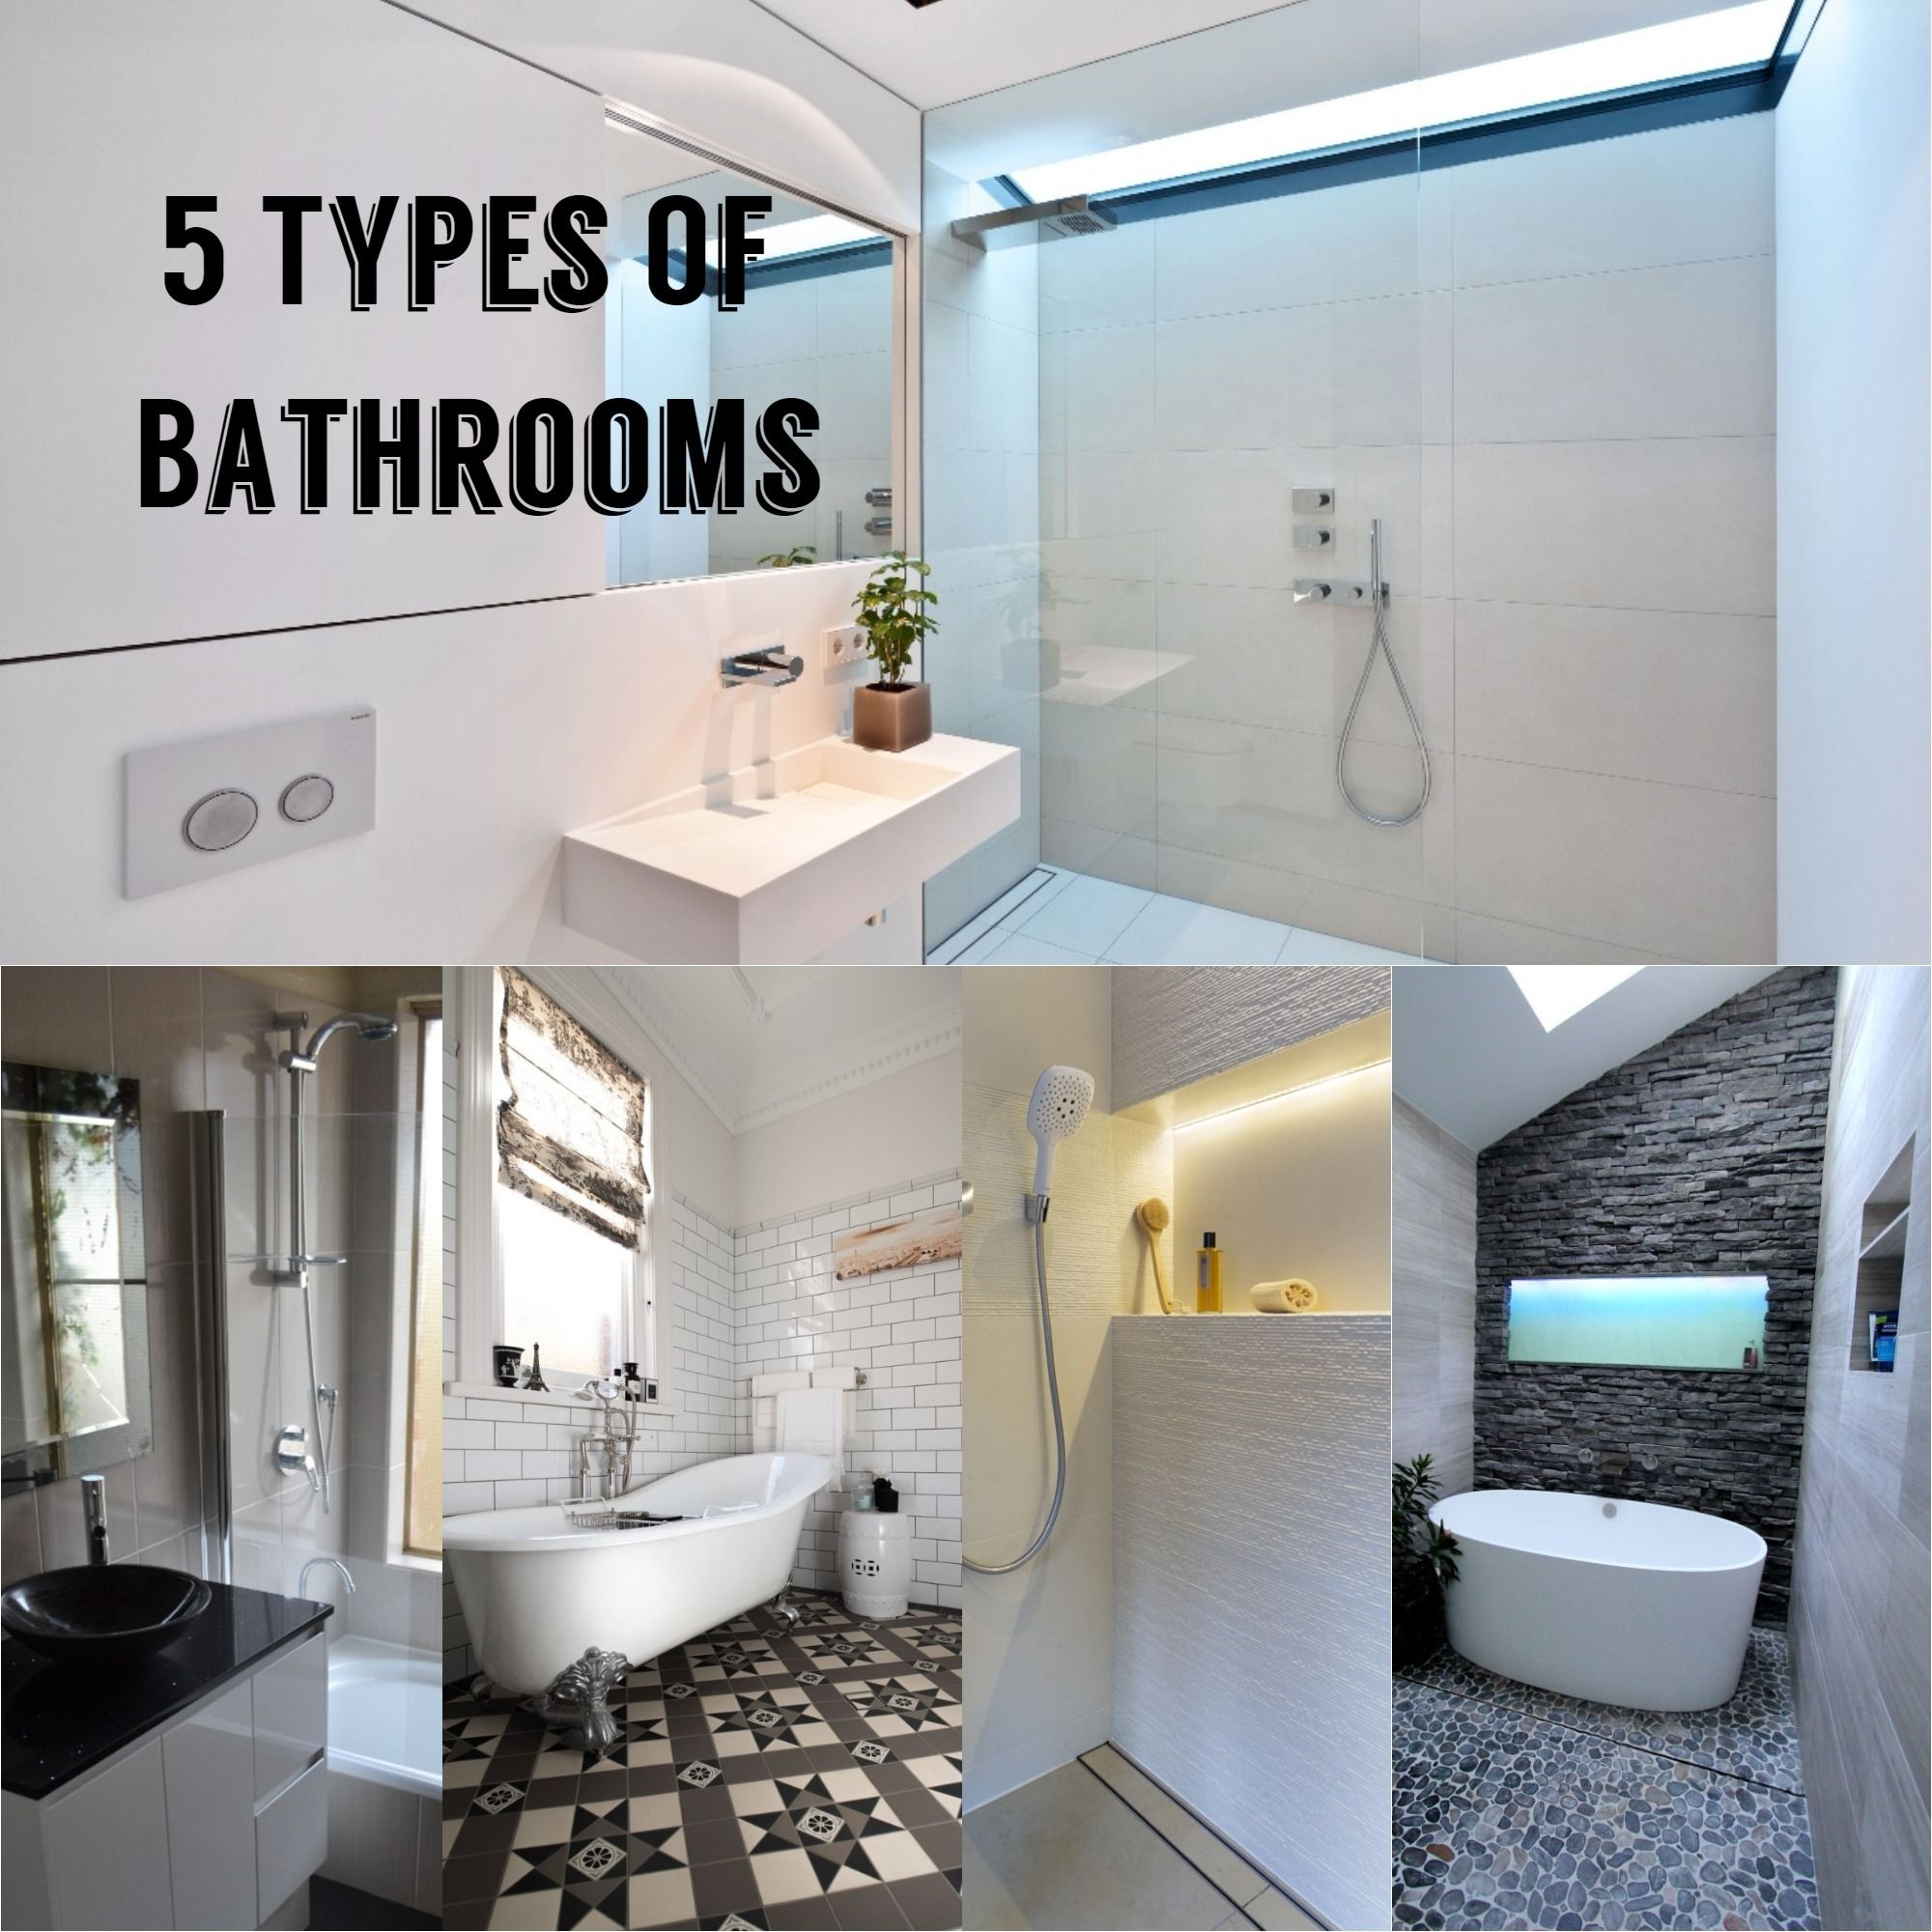 Bathroom Renovation Trends 12 - 12 and the 12 Types of Bathroom ...